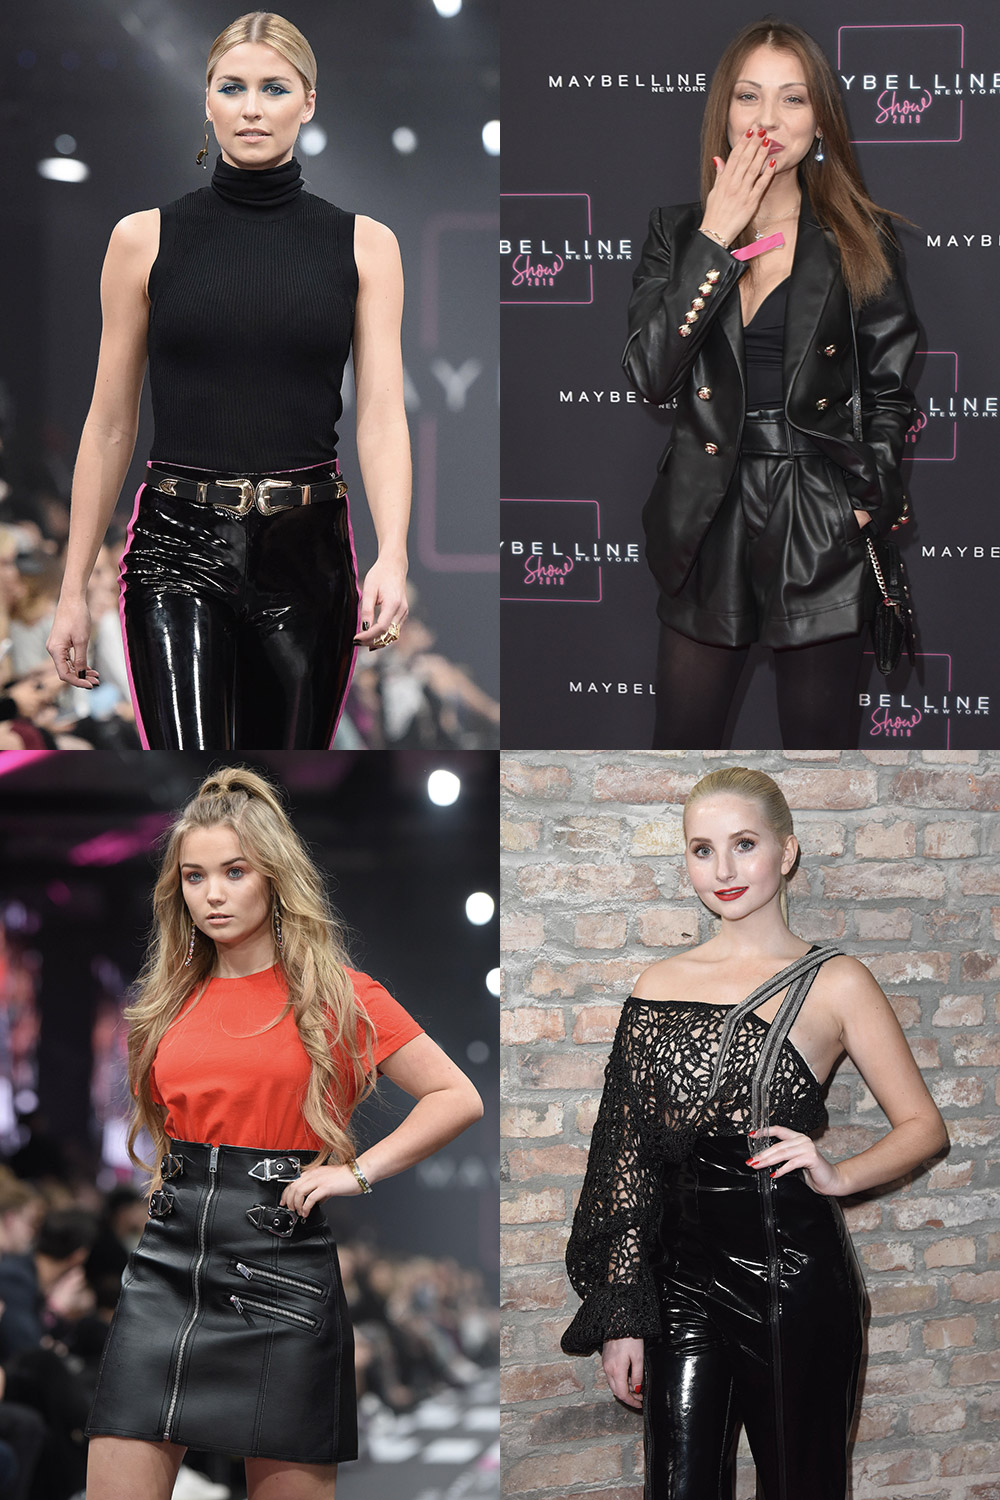 German celebs attend Maybelline Show Fashion Week Berlin